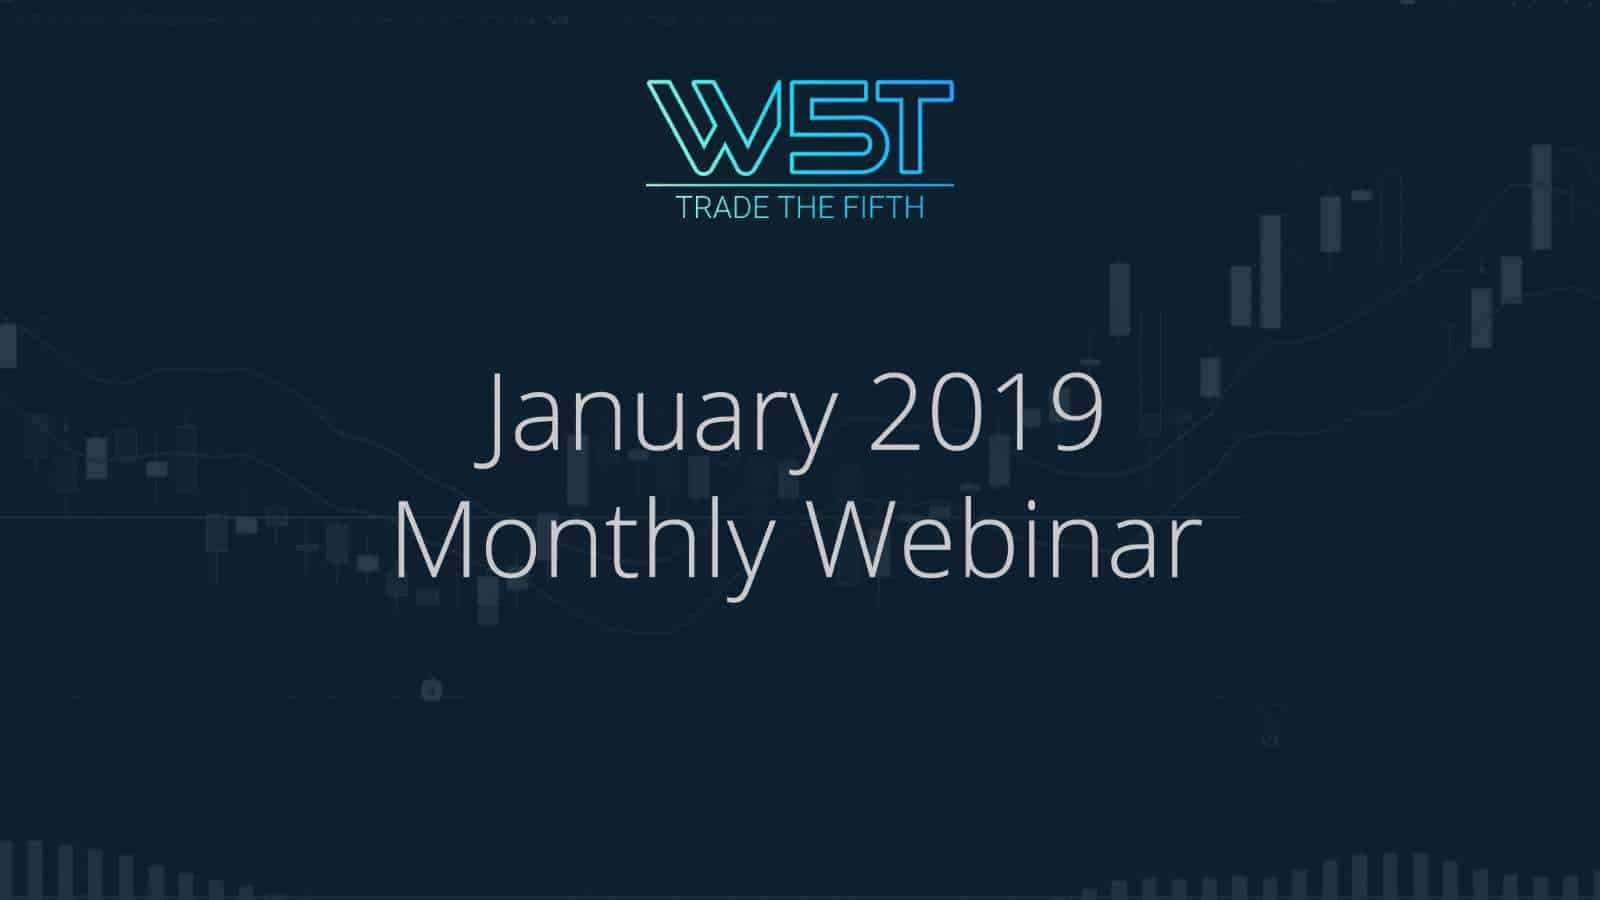 image of january 2019 tradethefifth webinar for thinkorswim charts